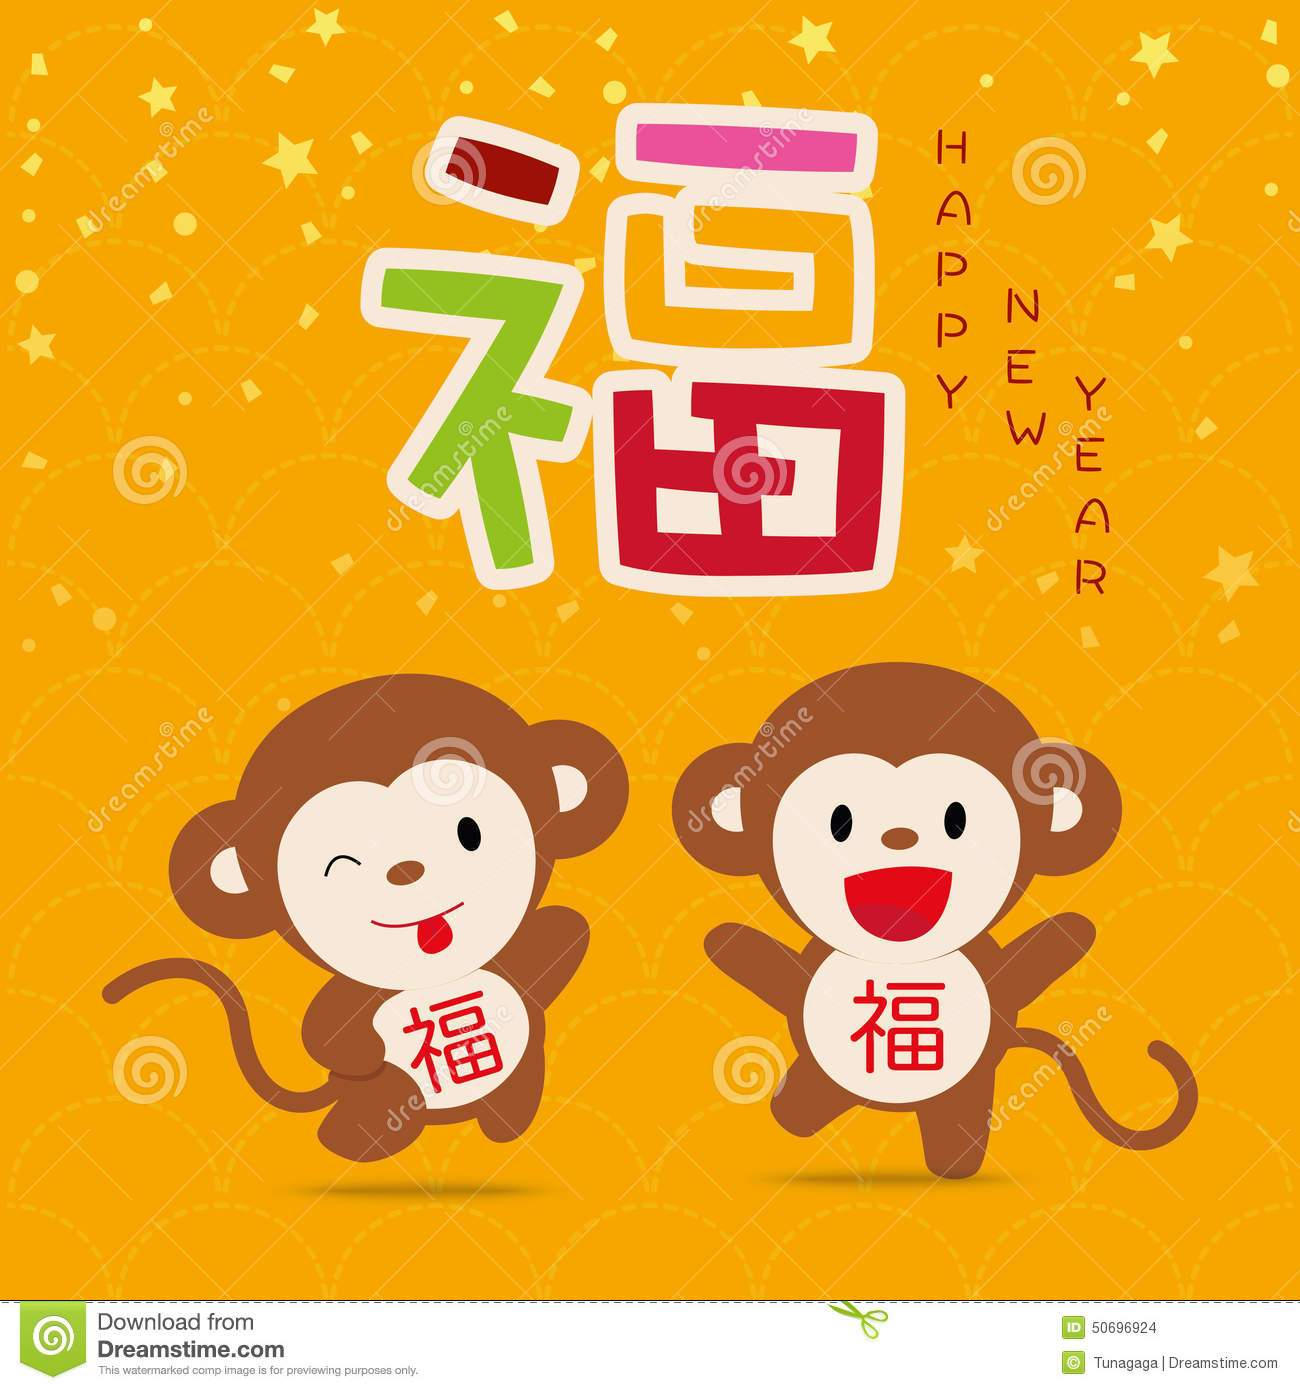 Chinese new year image clipart year of monkey picture transparent stock Chinese new year monkey clipart 8 » Clipart Portal picture transparent stock